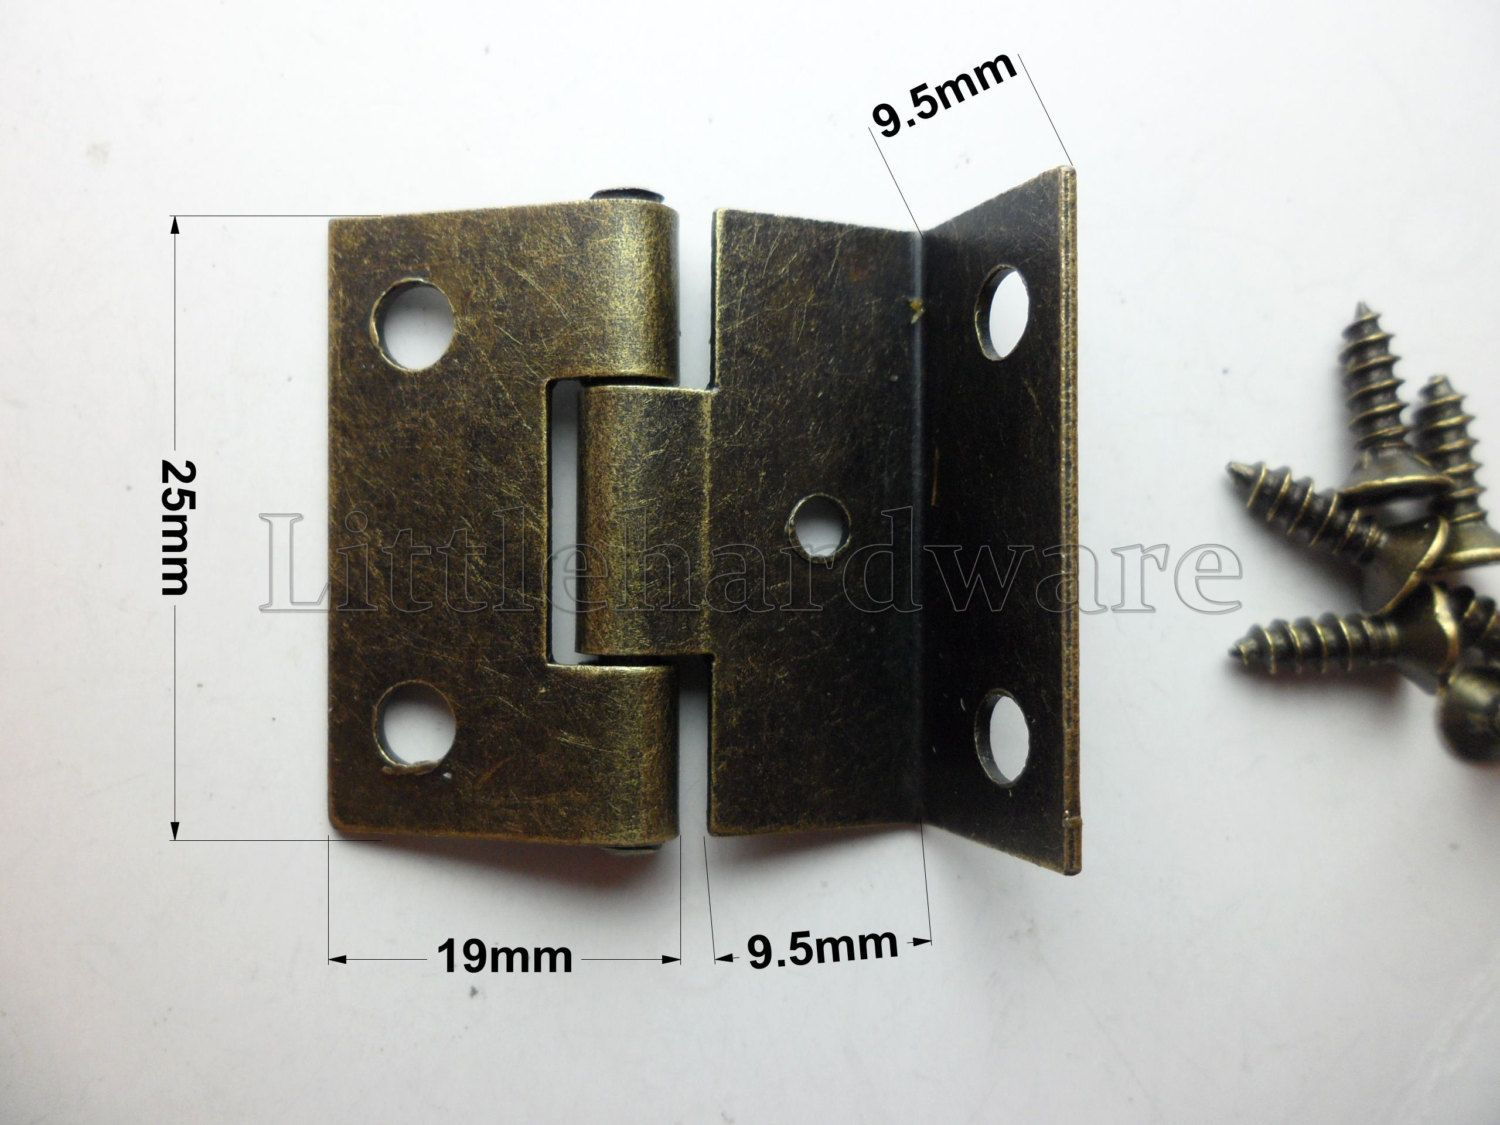 10 Pcs Chinese Classical Antique Brass Color 25mm Shutter Hinges Height Hinges Double Hinges Cabinet Hardware Vh0041 By Littlehardware On Etsy Goruntuler Ile